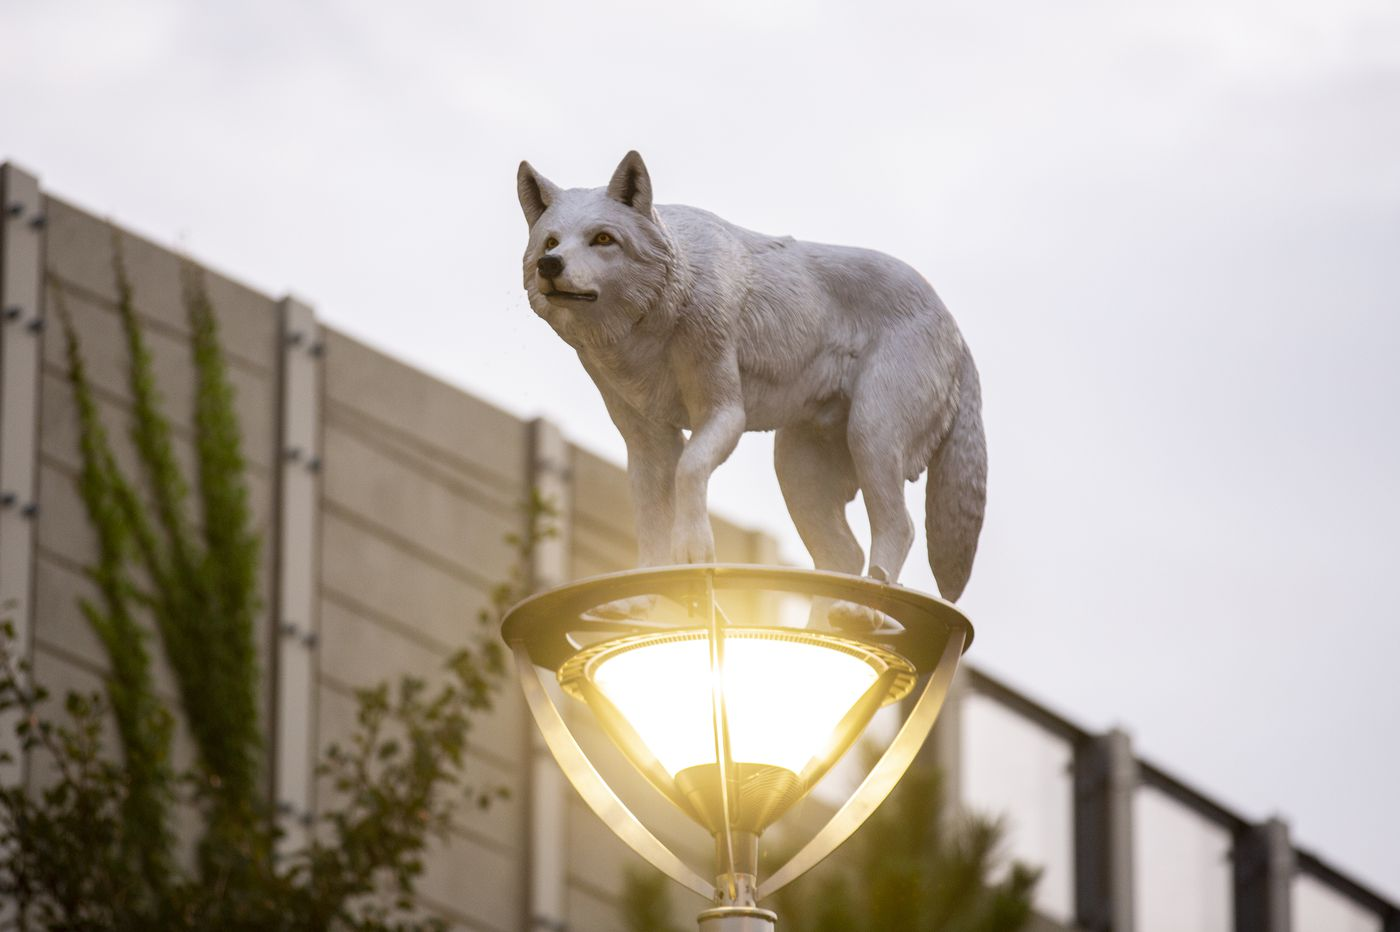 Here's why there are wolf and turkey sculptures on top of Fishtown lampposts